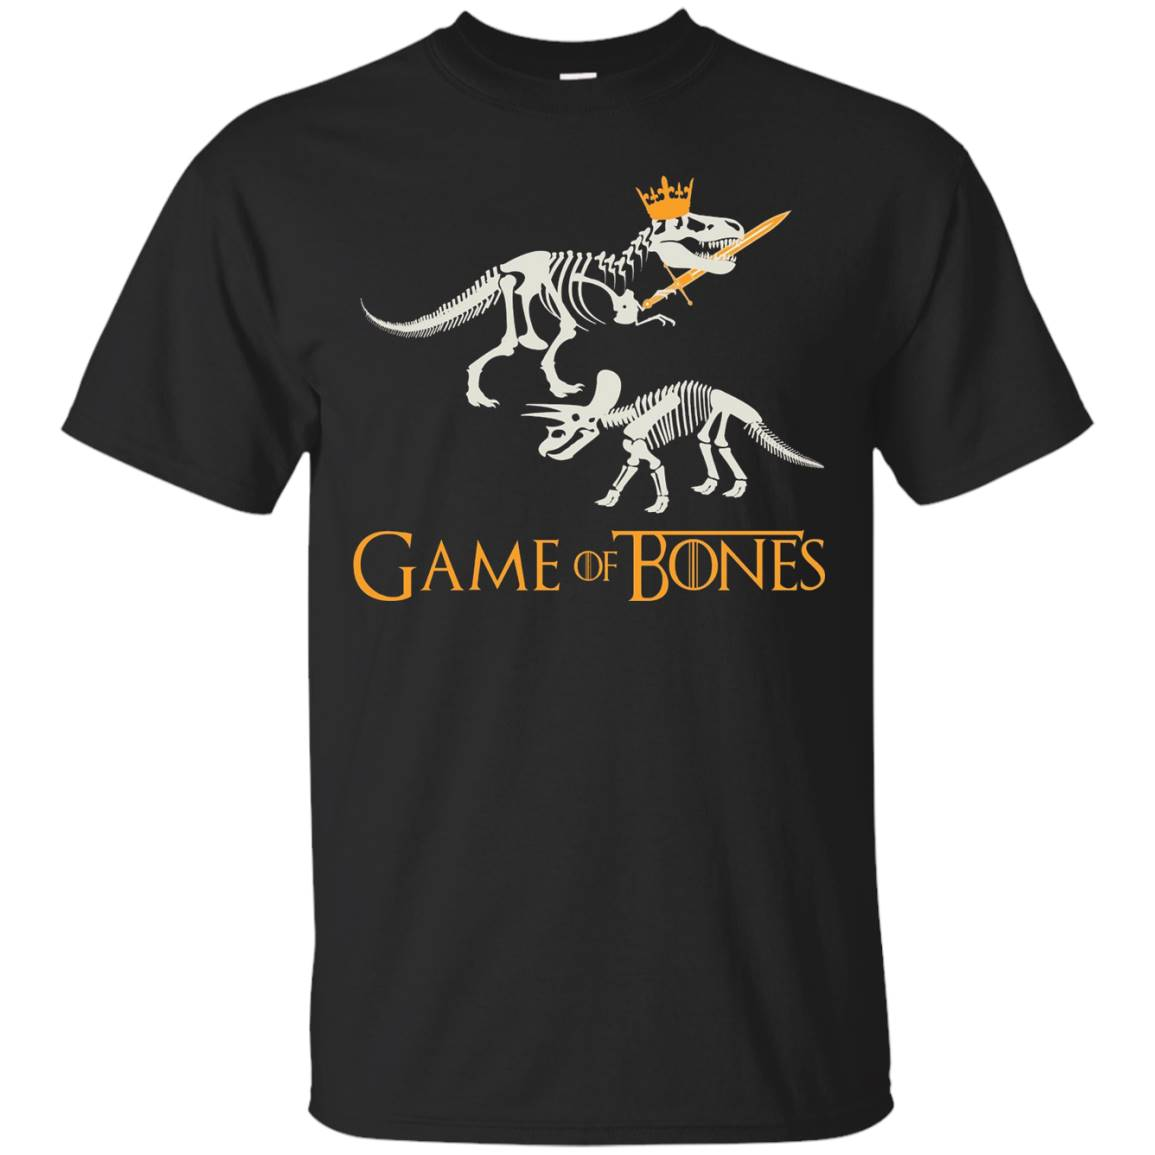 Funny Game Of Bones T-shirt, Dinosaur, T-Rex, Zany Brainy – T-Shirt